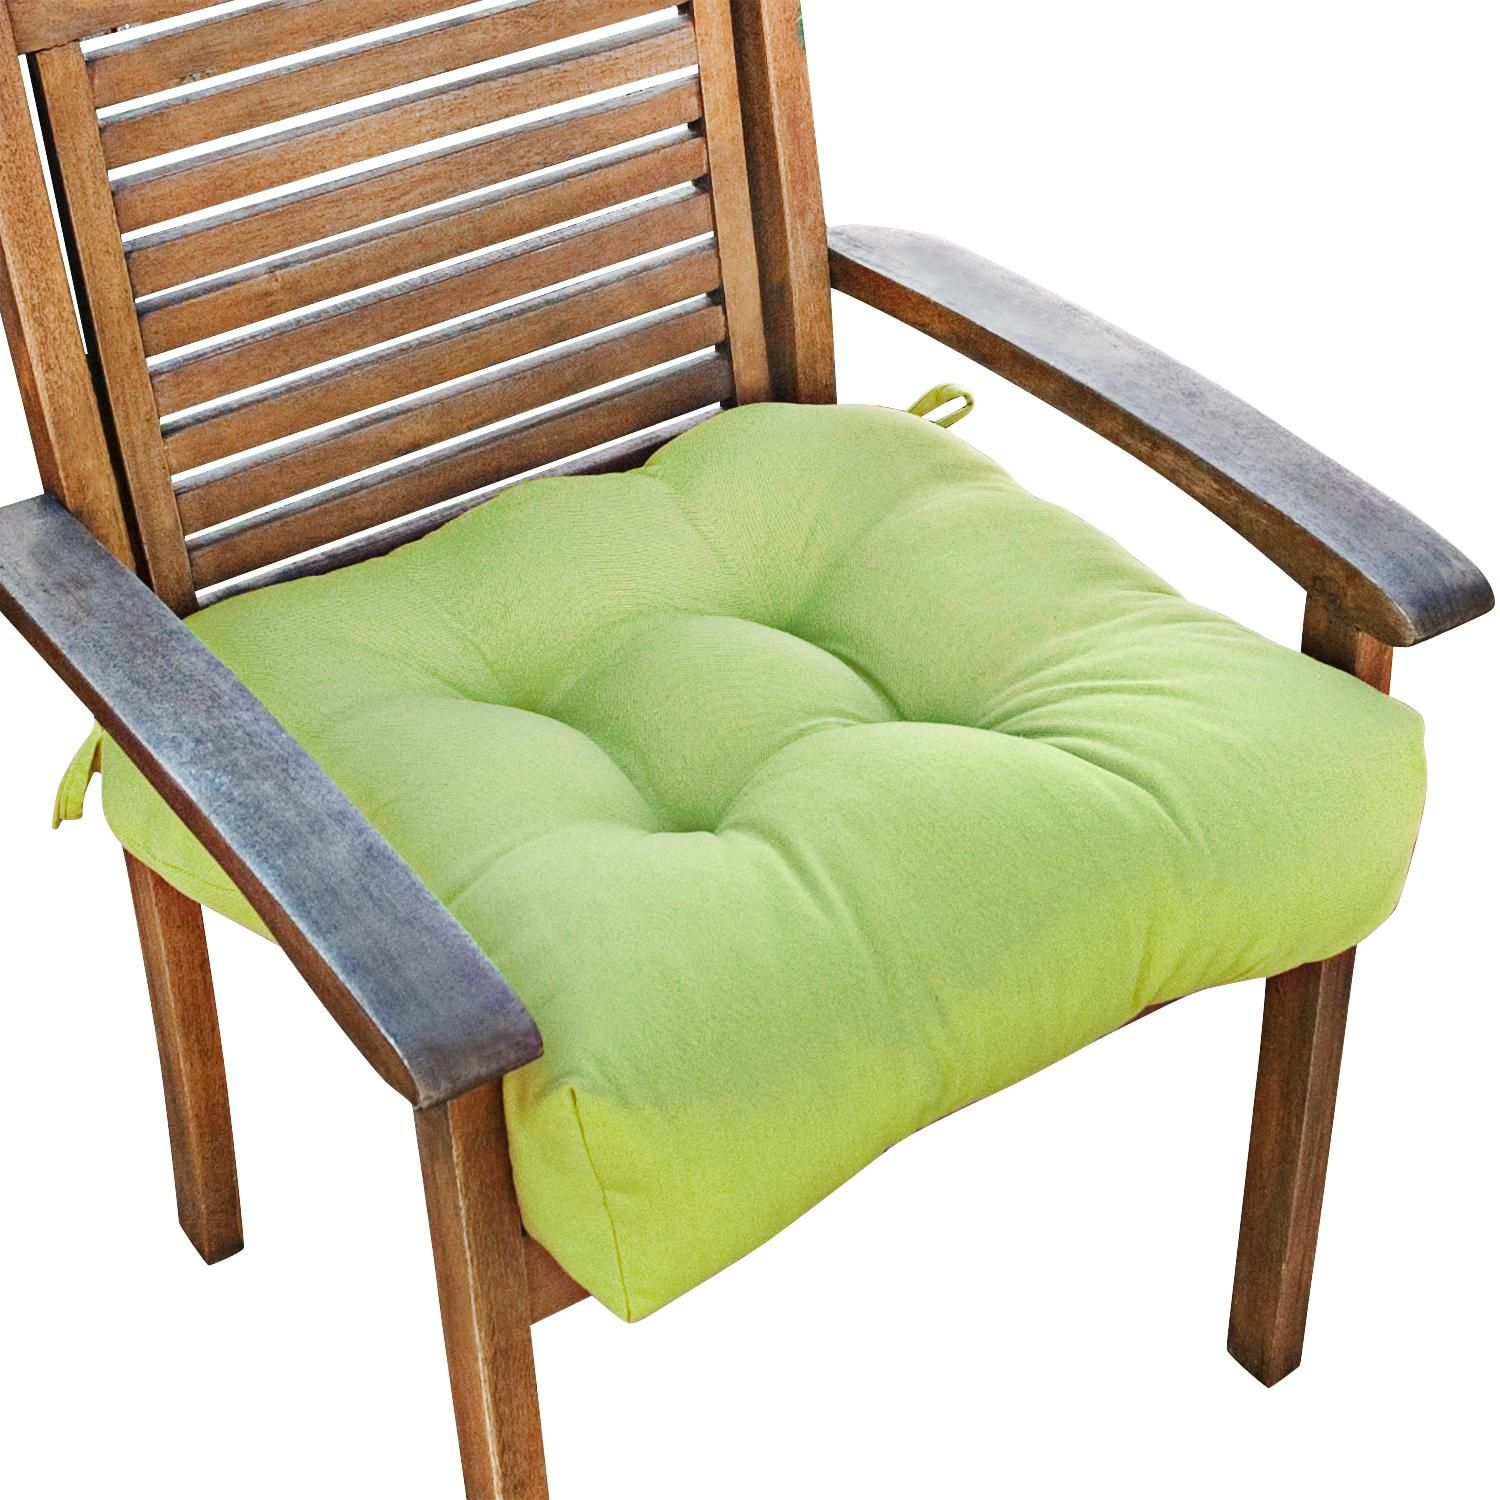 """Kiwi 8"""" Square Green Outdoor Chair Cushion - #W8  Lamps Plus"""